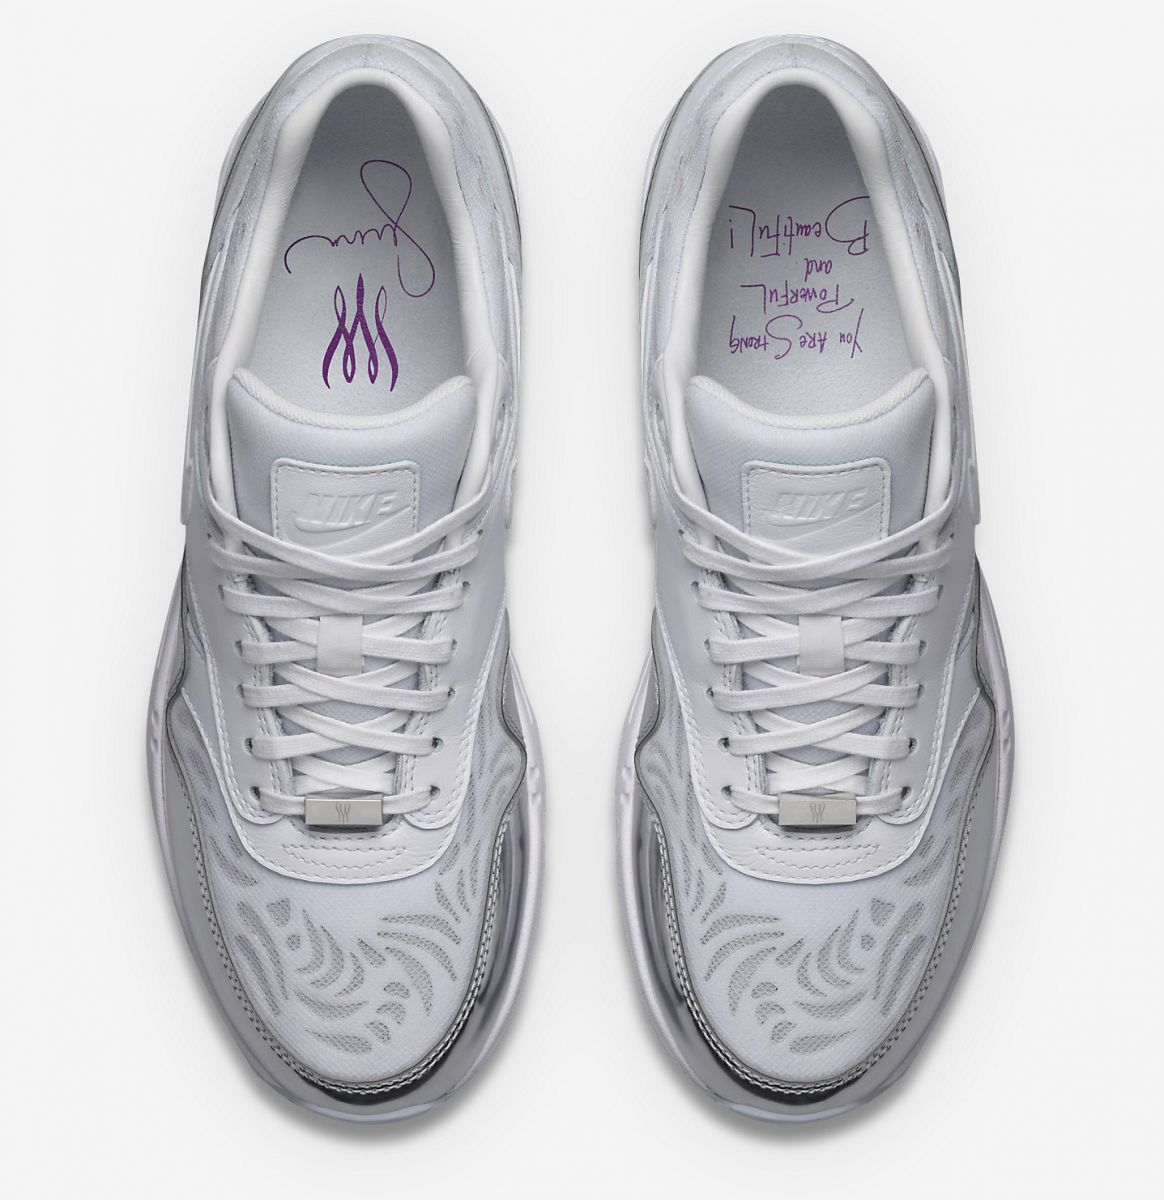 NikeCourt Air Max 1 Ultra Serena Williams